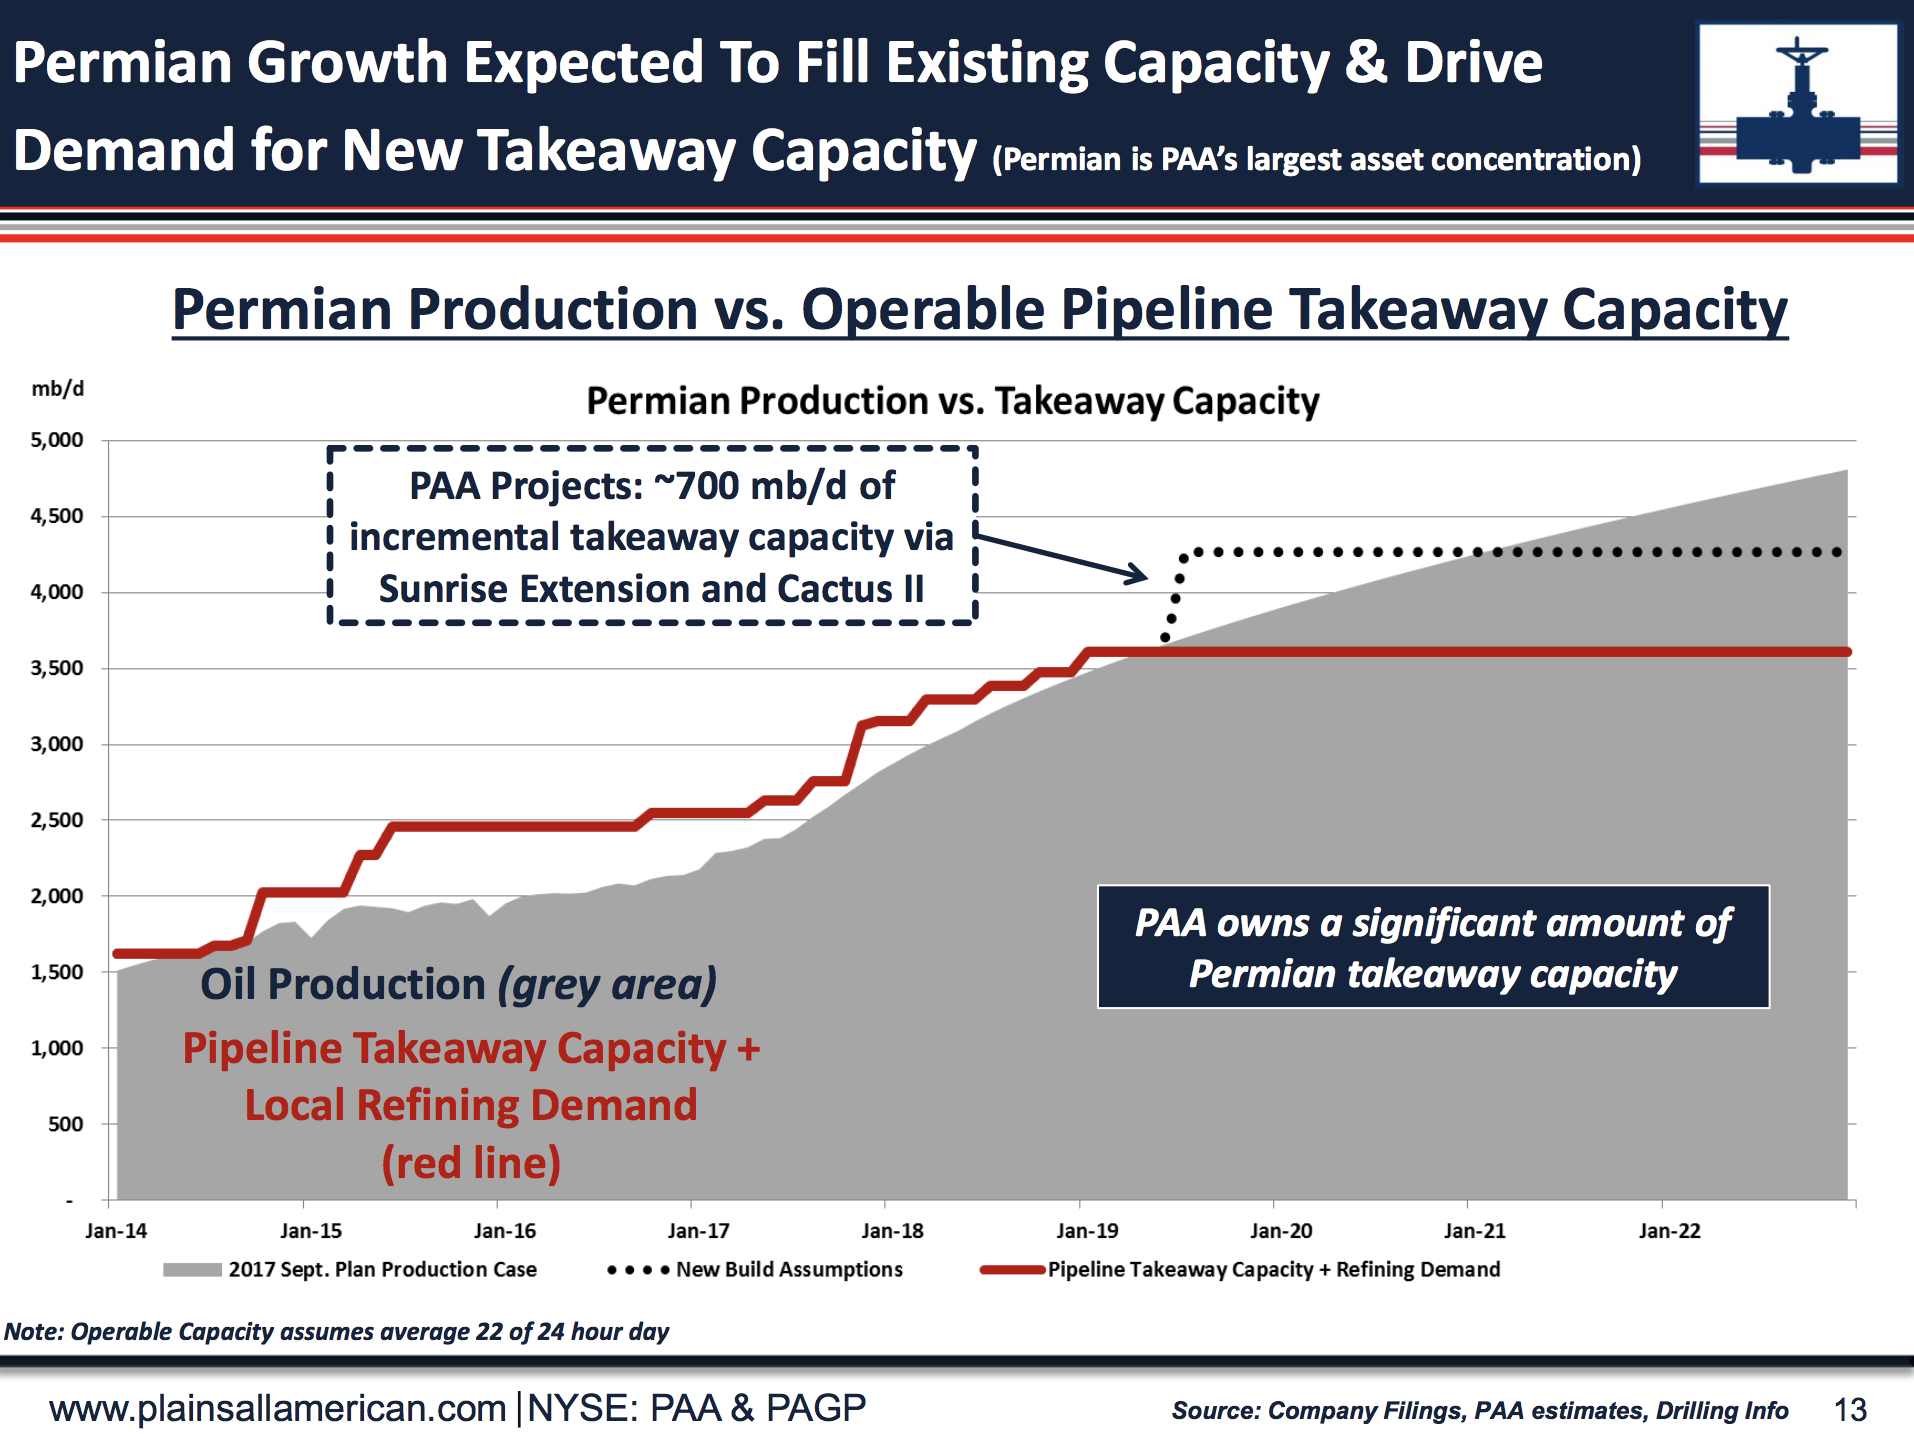 Plains All American (PAA) is the top midstream operator in the Permian  basin, and PAA is expected to massively increase takeaway capacity in 2019.